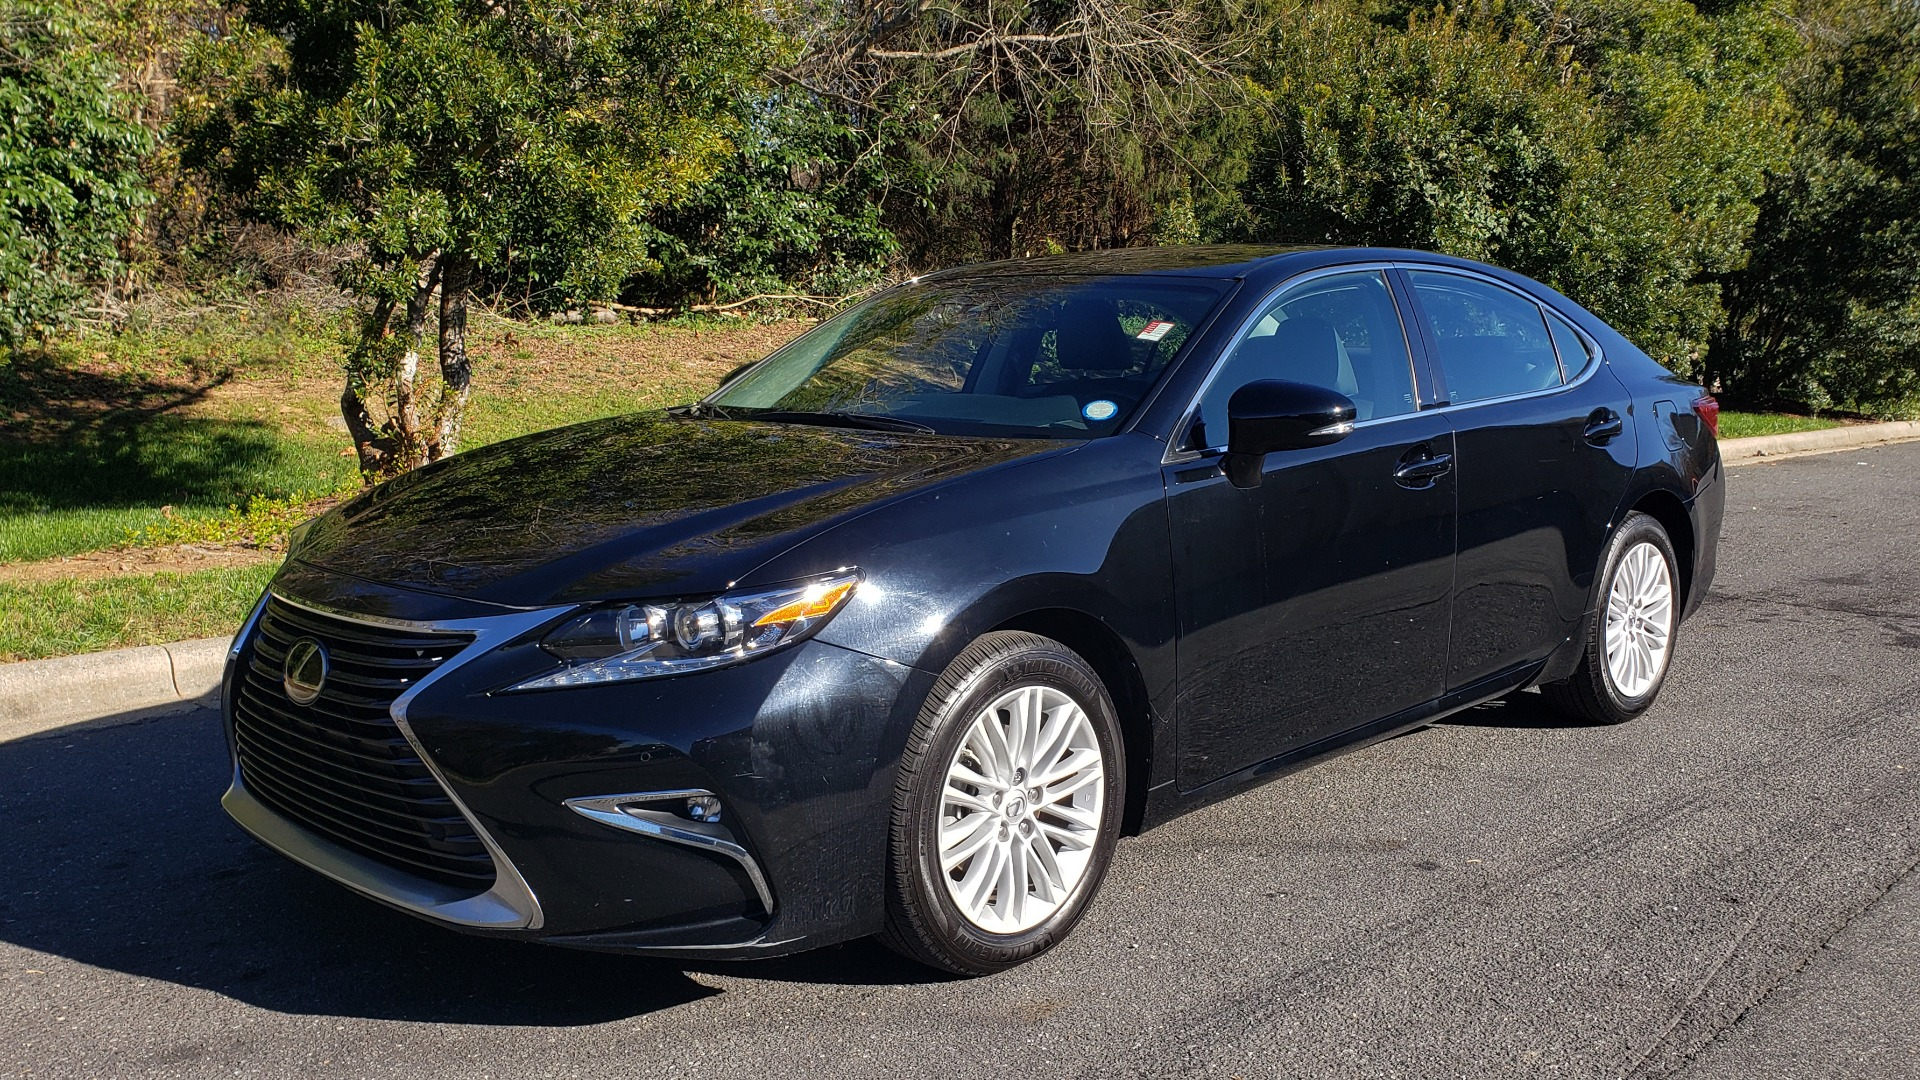 Used 2017 Lexus ES 350 PREMIUM / NAV / SUNROOF / BSM / VENT STS / REARVIEW for sale $24,795 at Formula Imports in Charlotte NC 28227 1